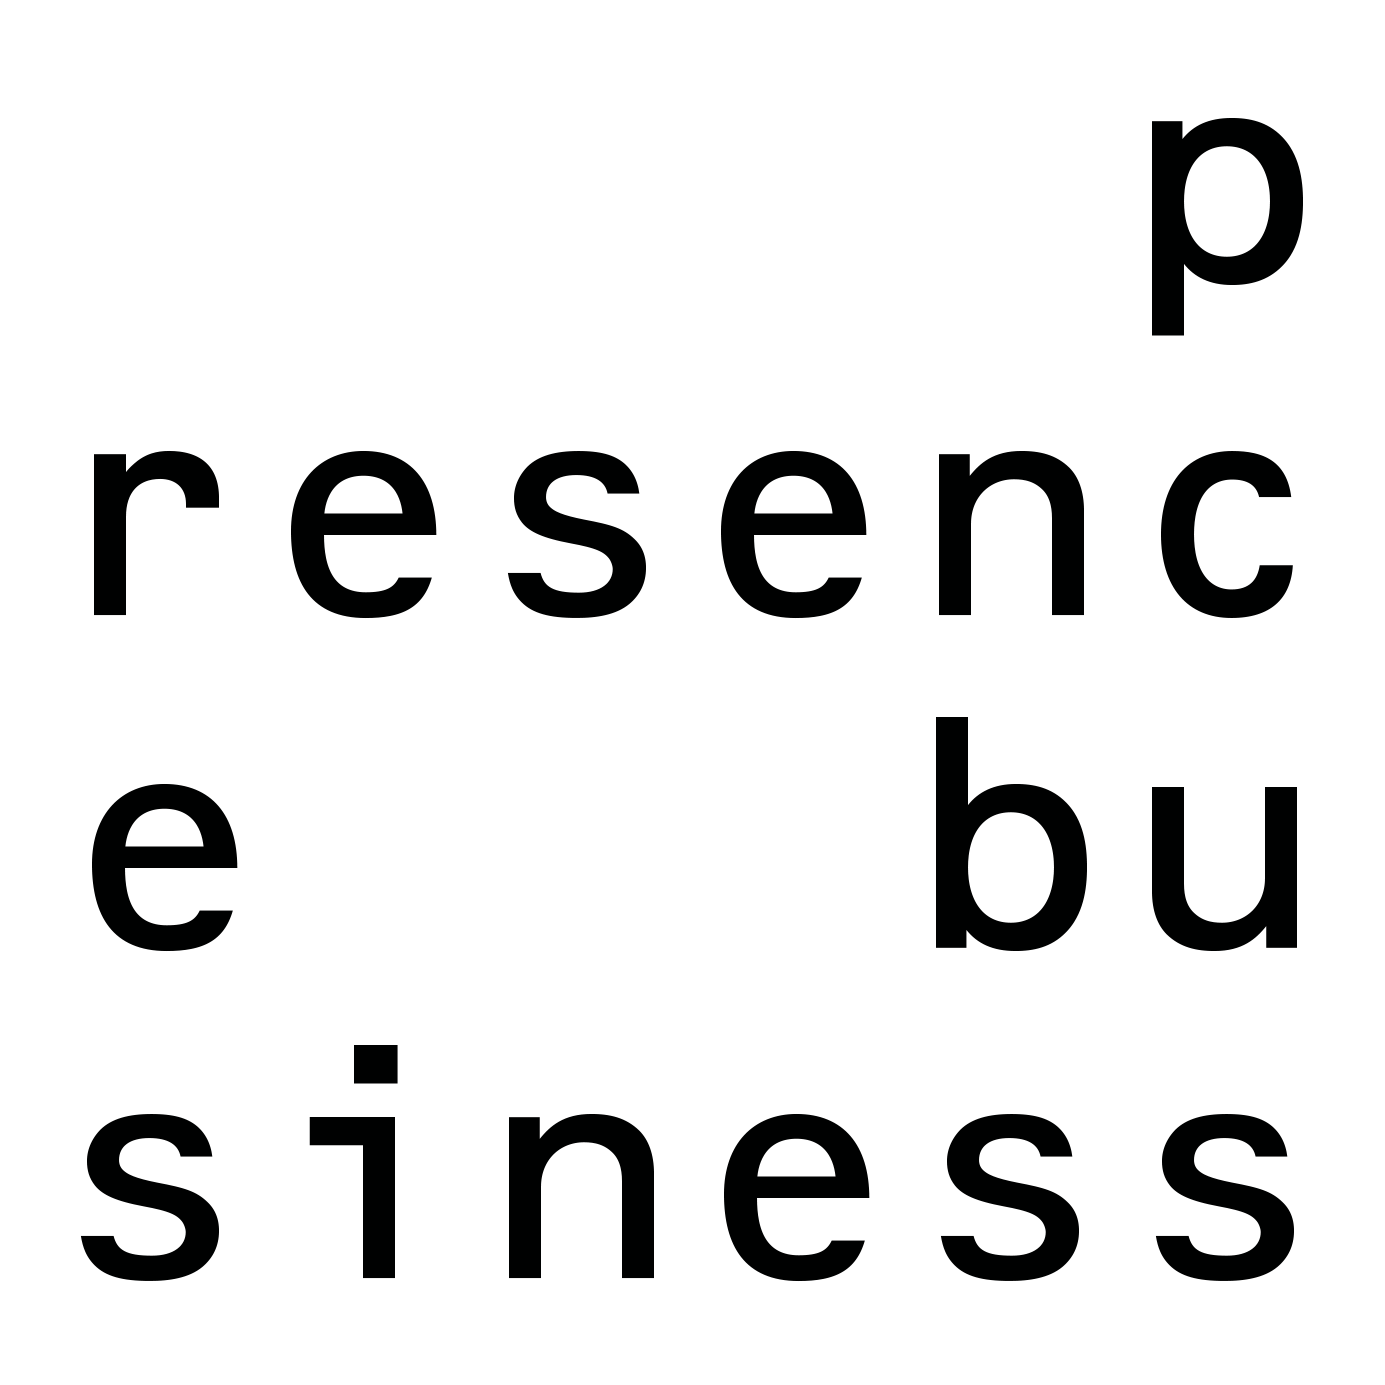 stagepresence for business